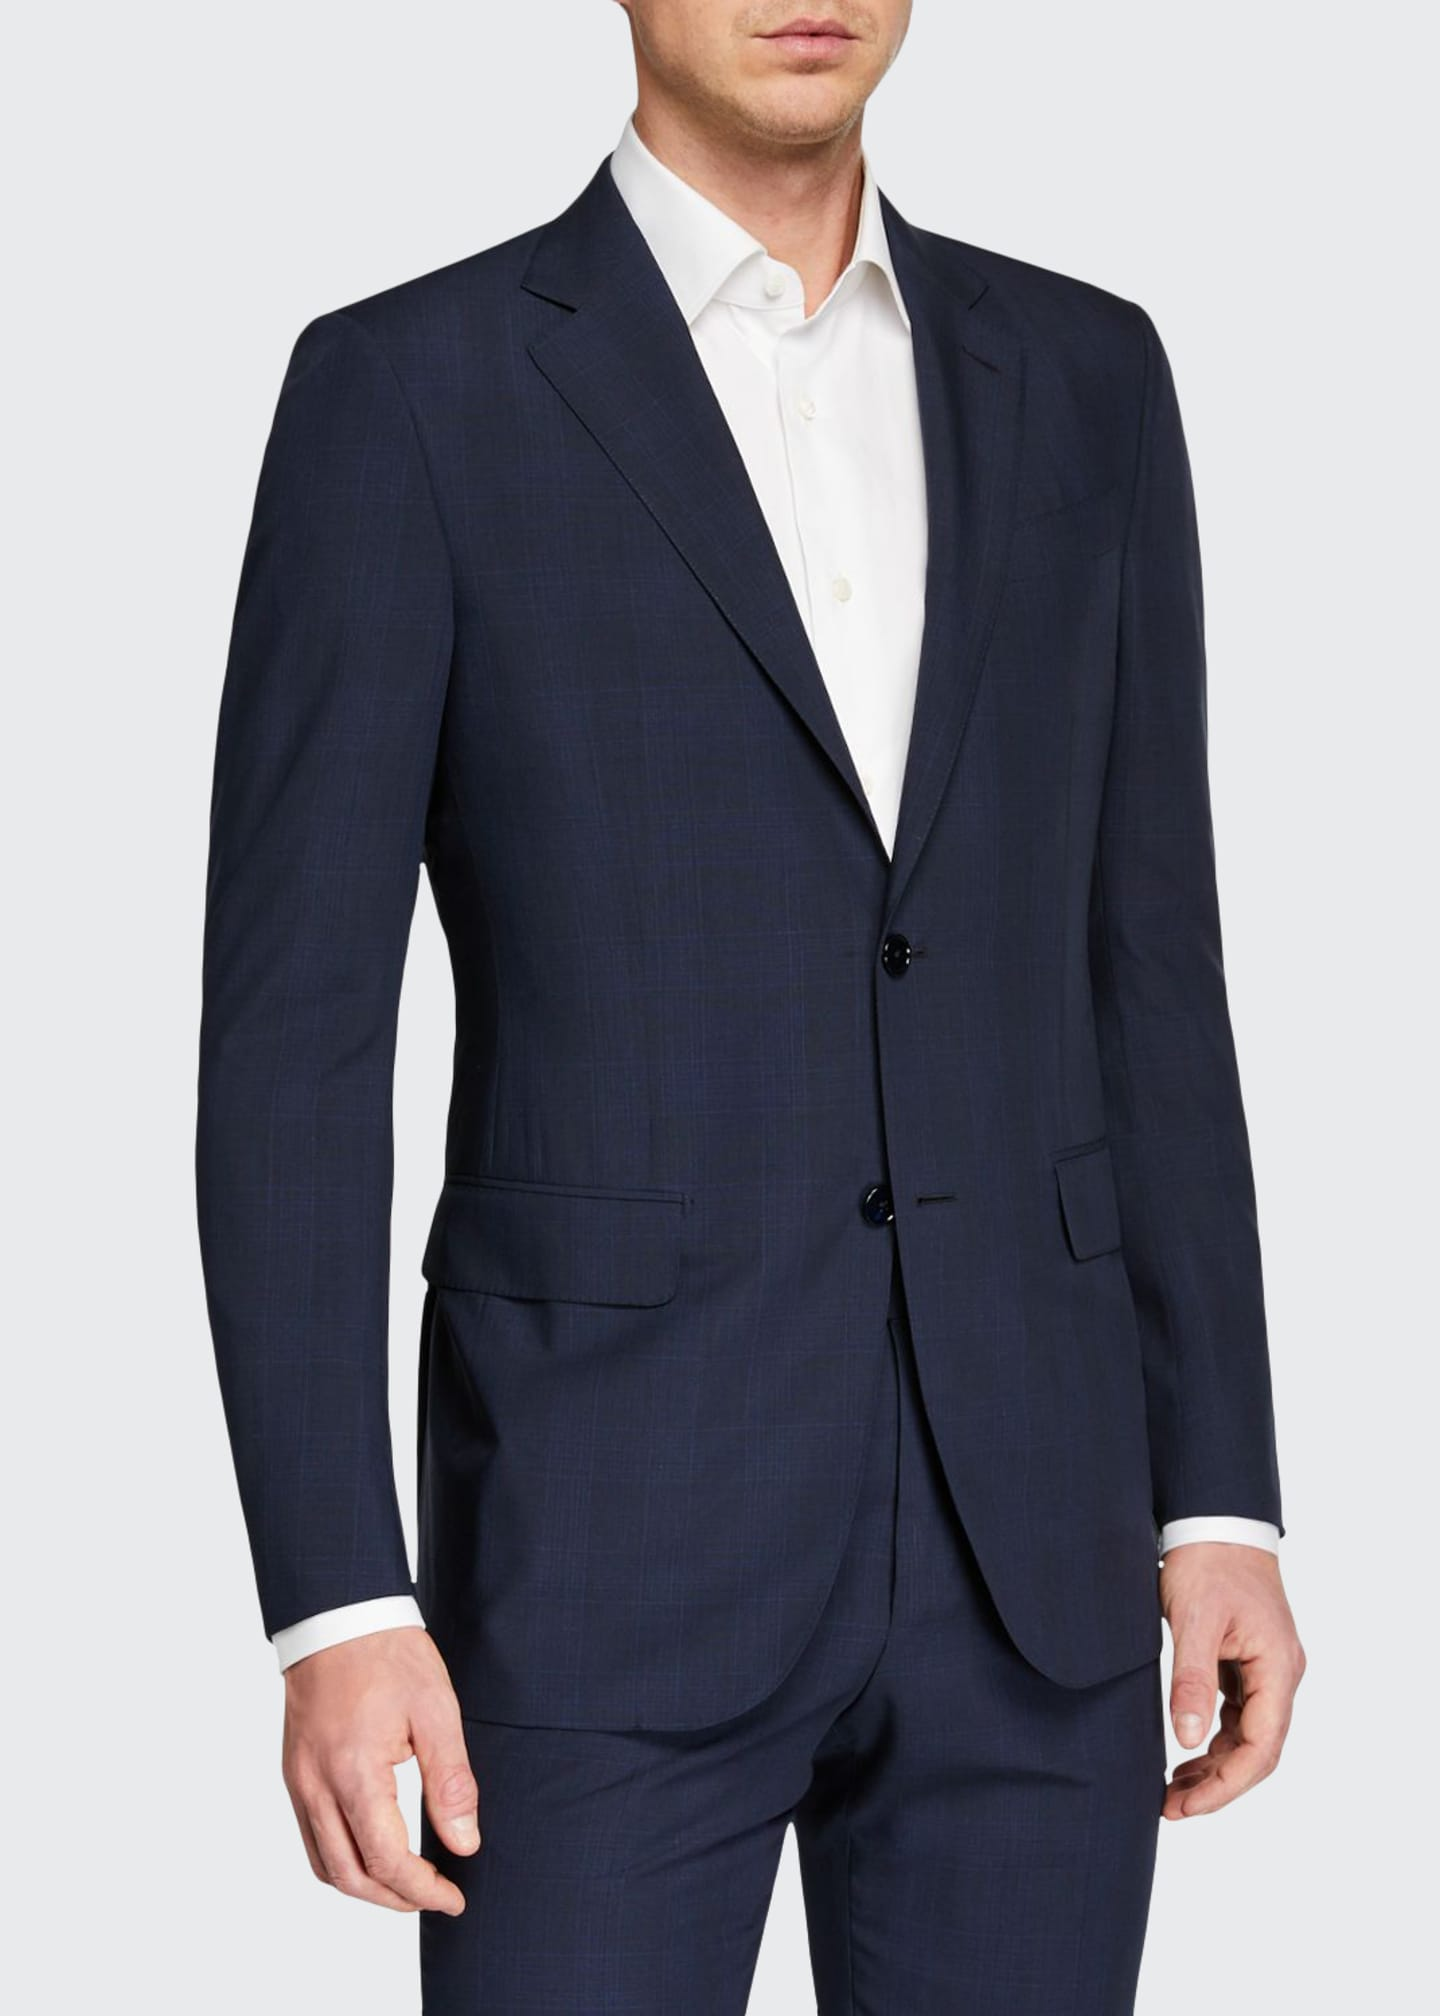 Ermenegildo Zegna Men's Leggerissimo Two-Piece Solid Wool-Silk